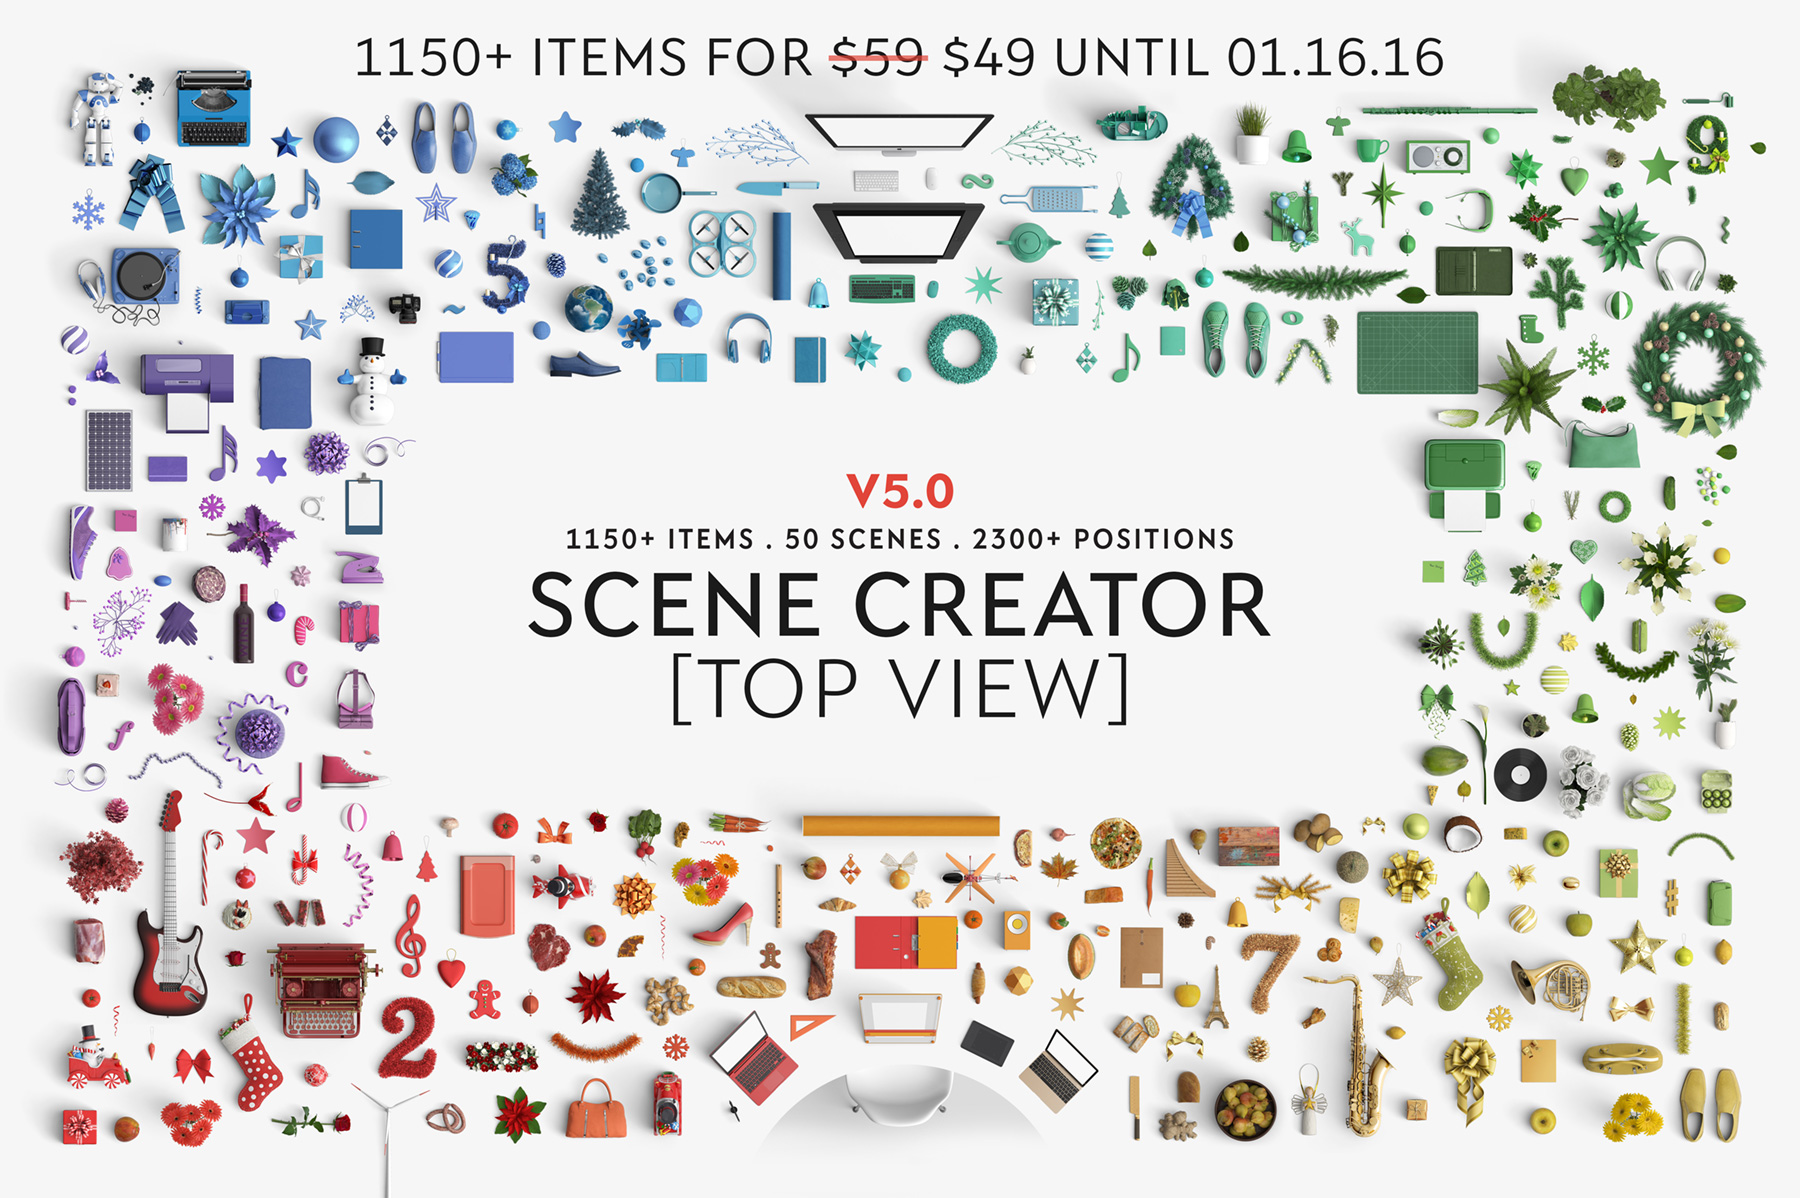 Scene-creator-Top-view2